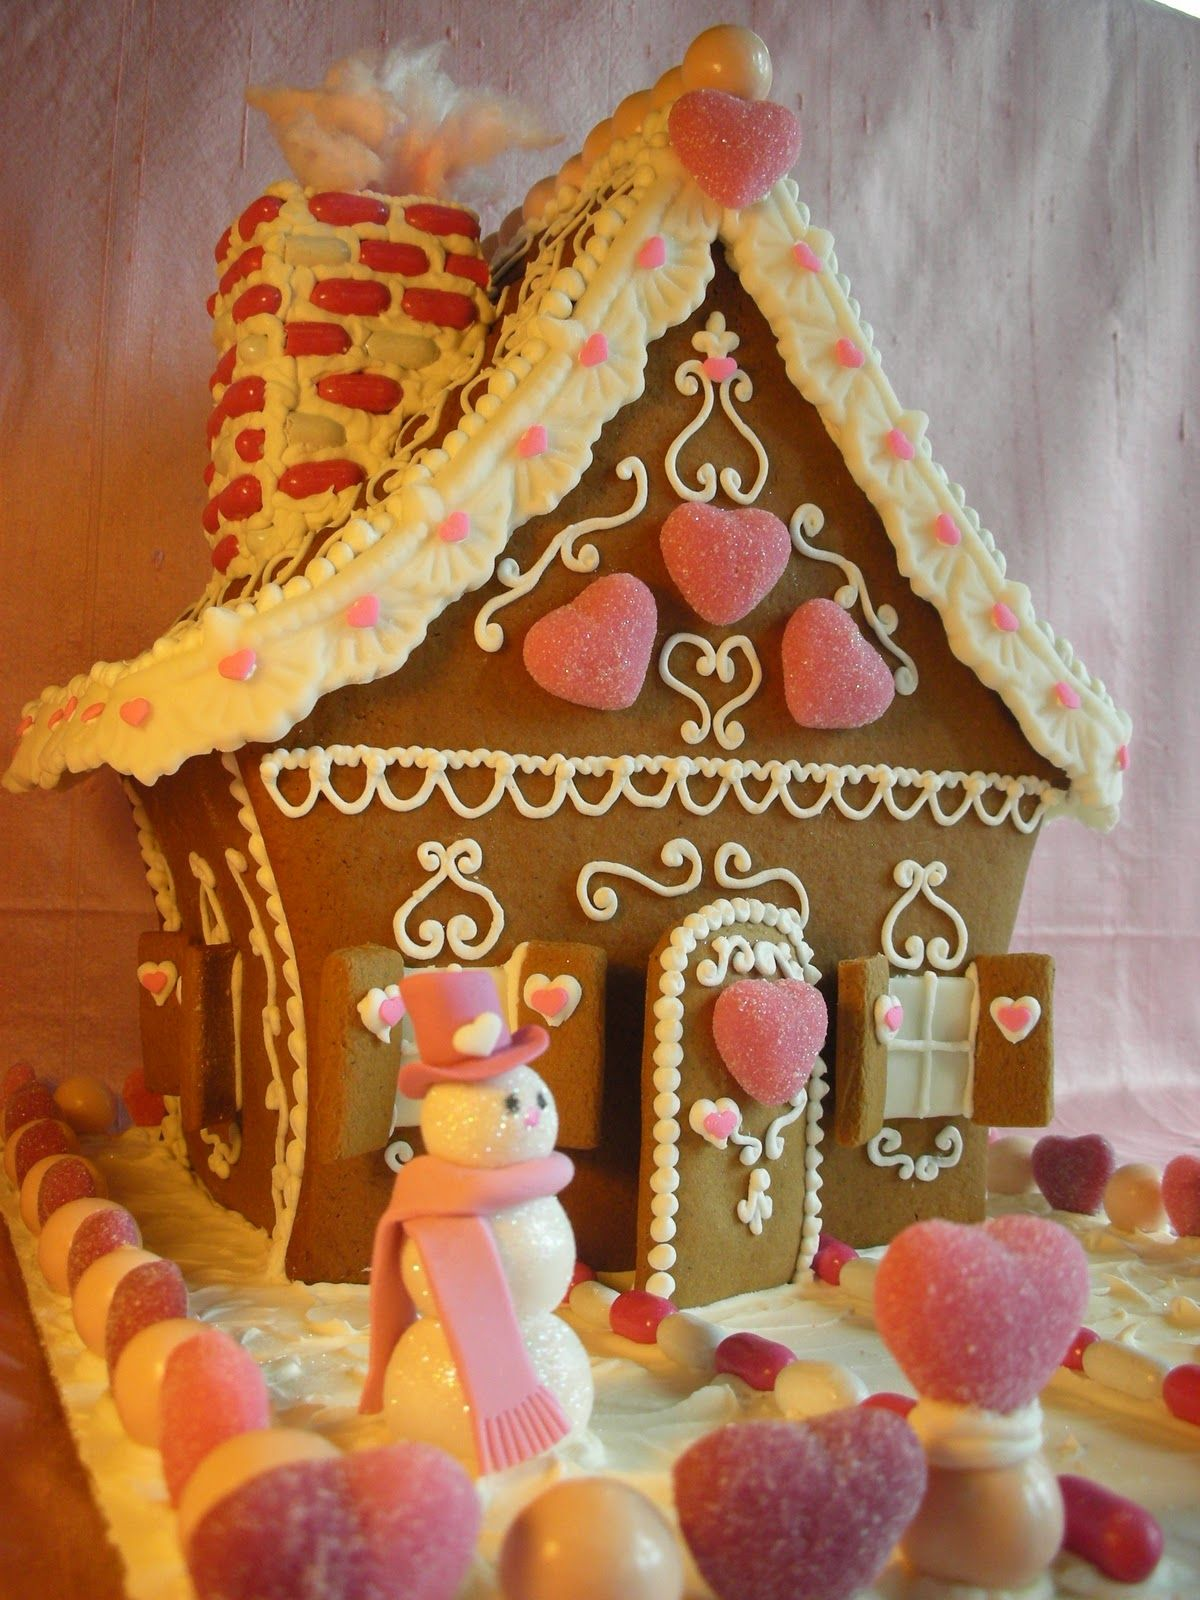 A pink Christmas Gingerbread House ...we have made one ...